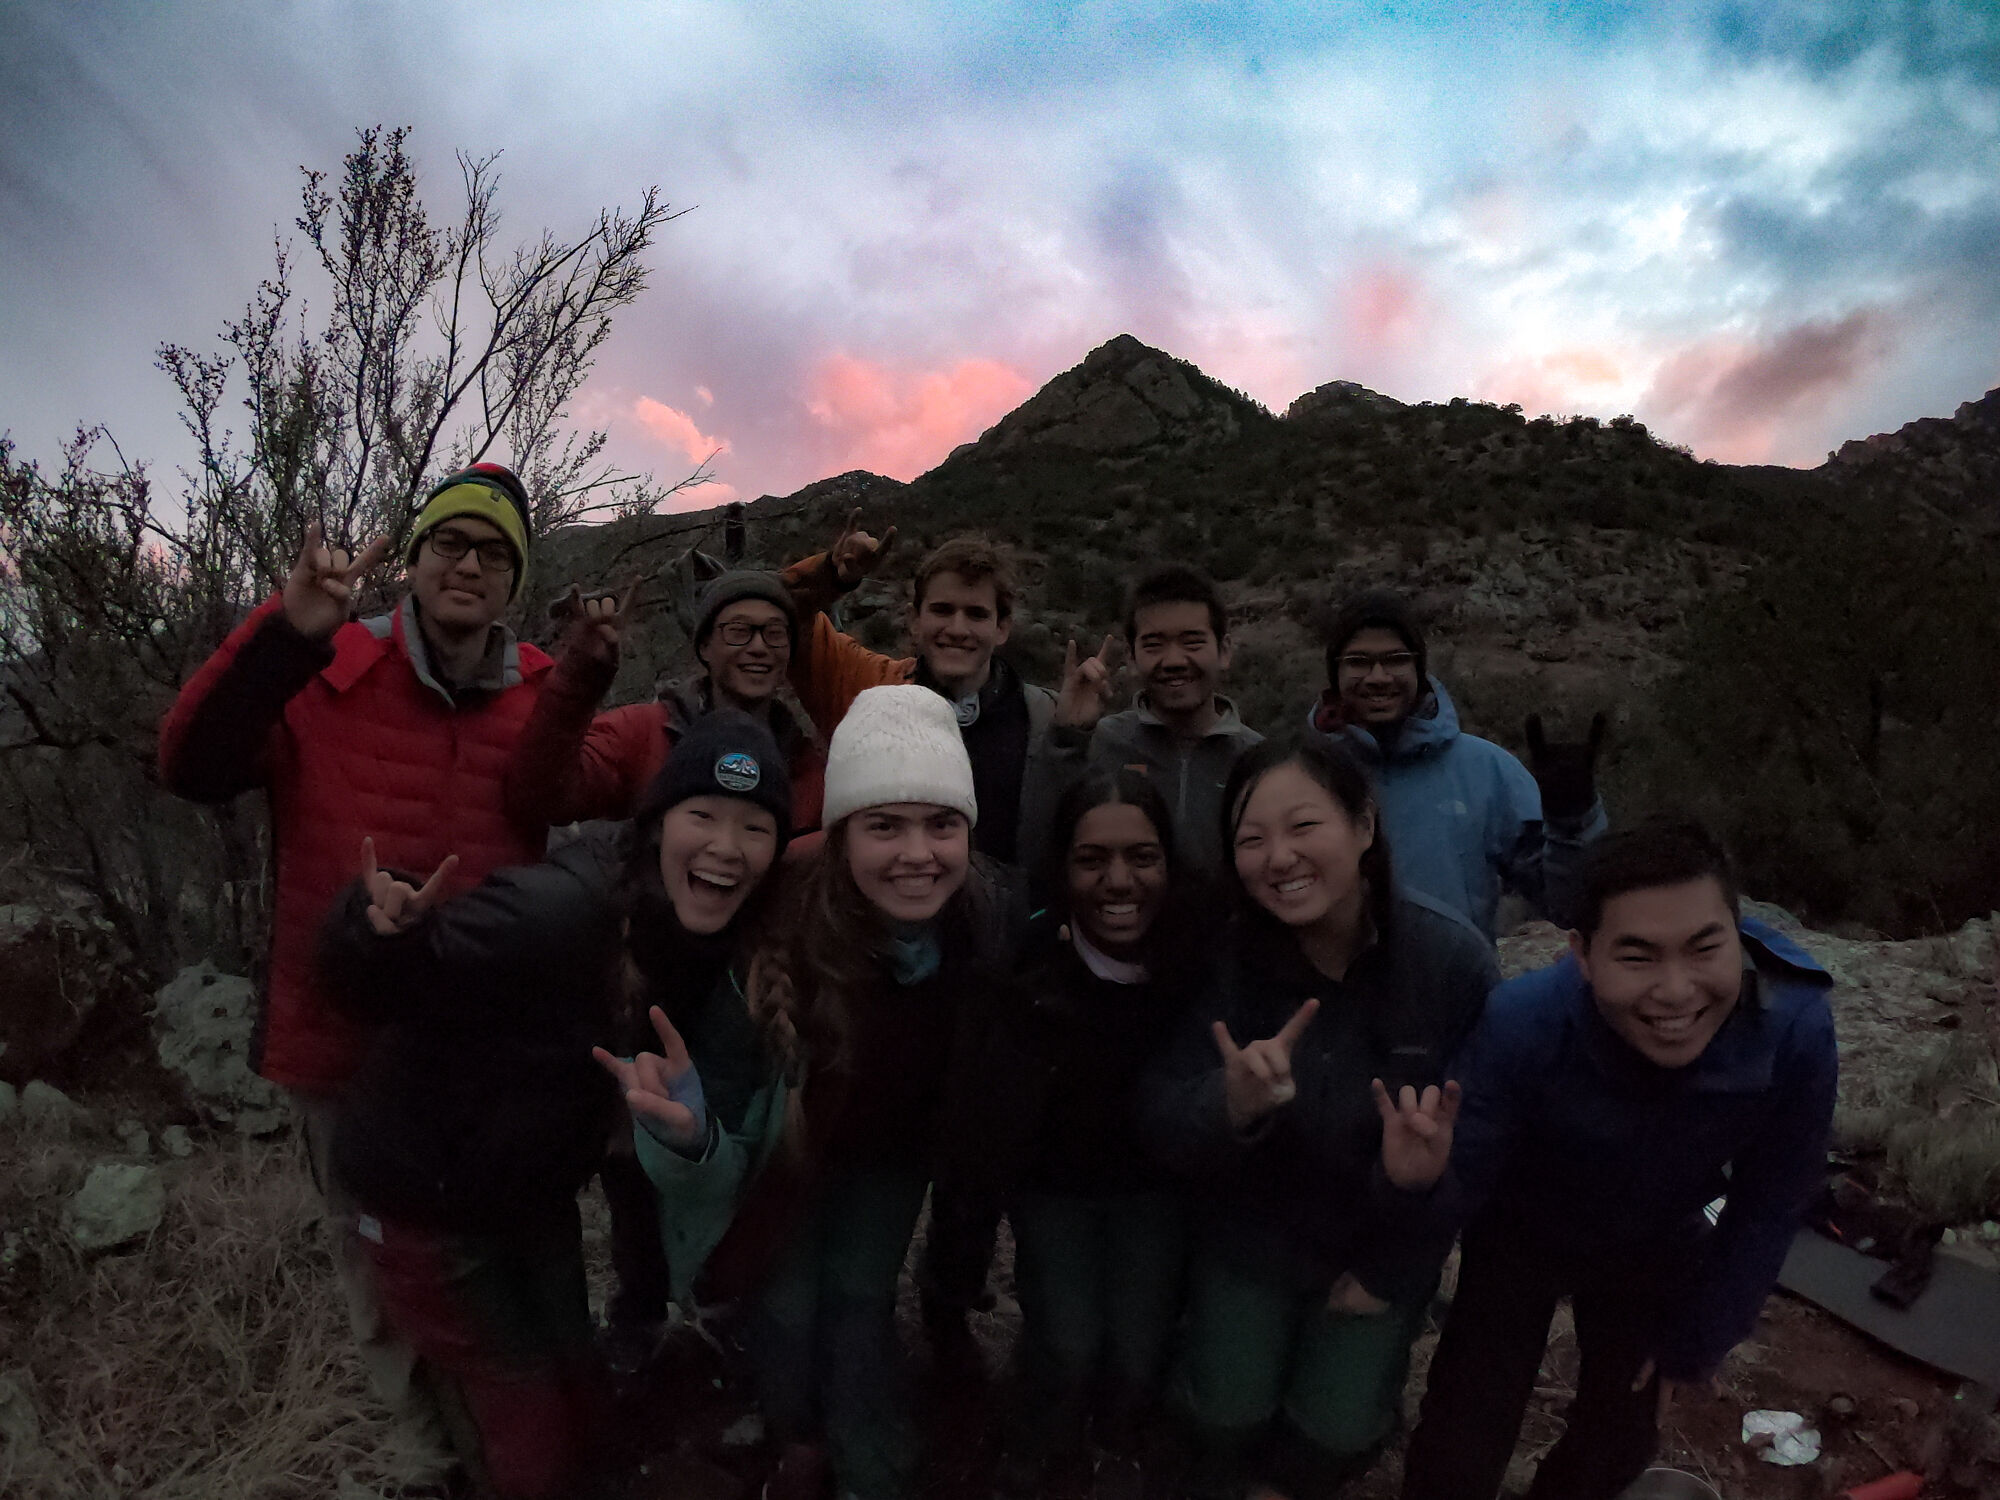 A group of business school students on a NOLS expedition hold up hand signals while the sun sets behind them